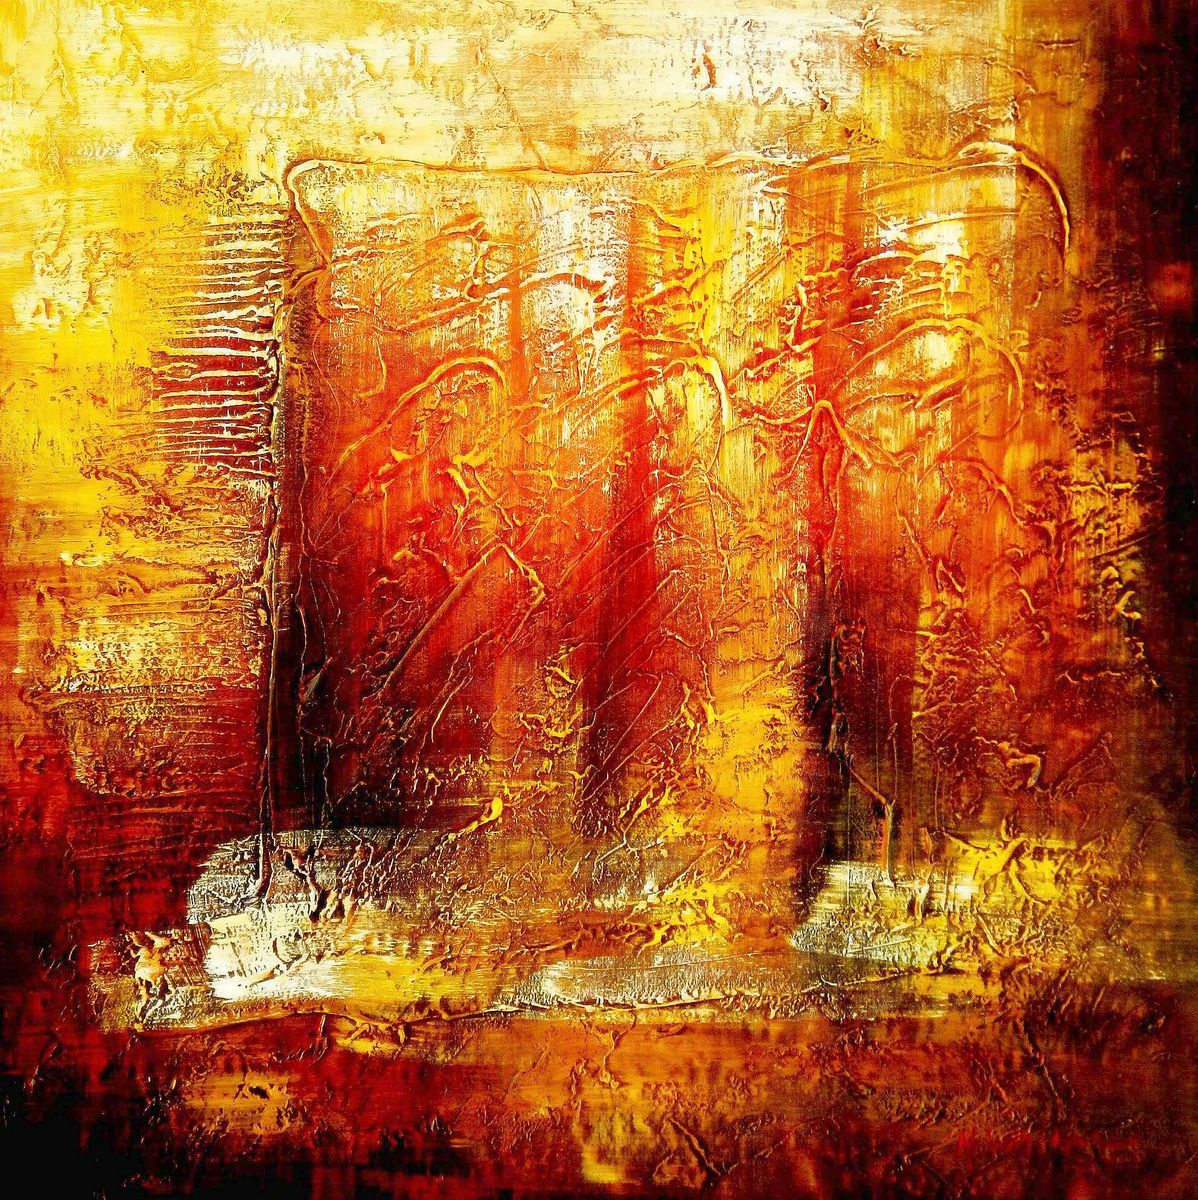 Abstract - Legacy of Fire III g96171 80x80cm abstraktes Ölbild handgemalt